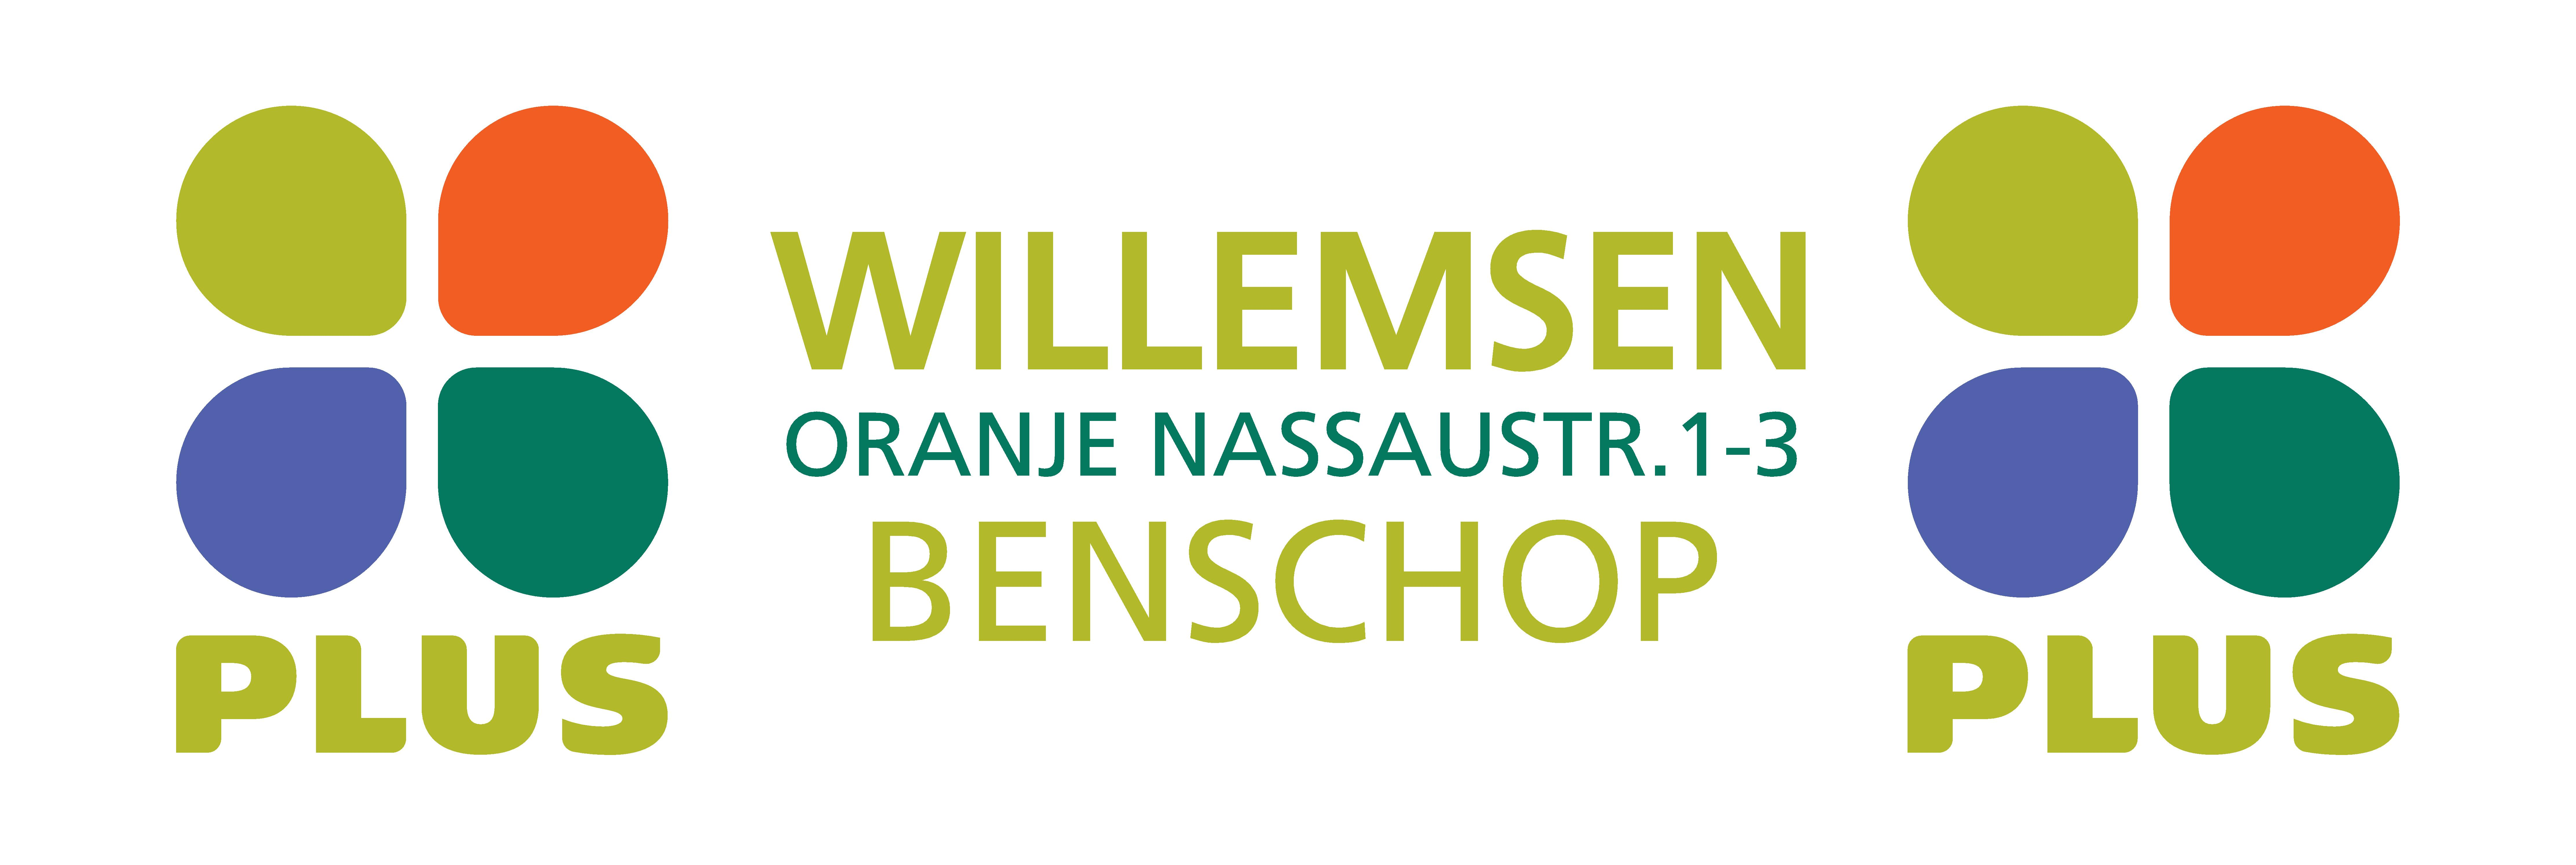 PLUS Willemsen Benschop